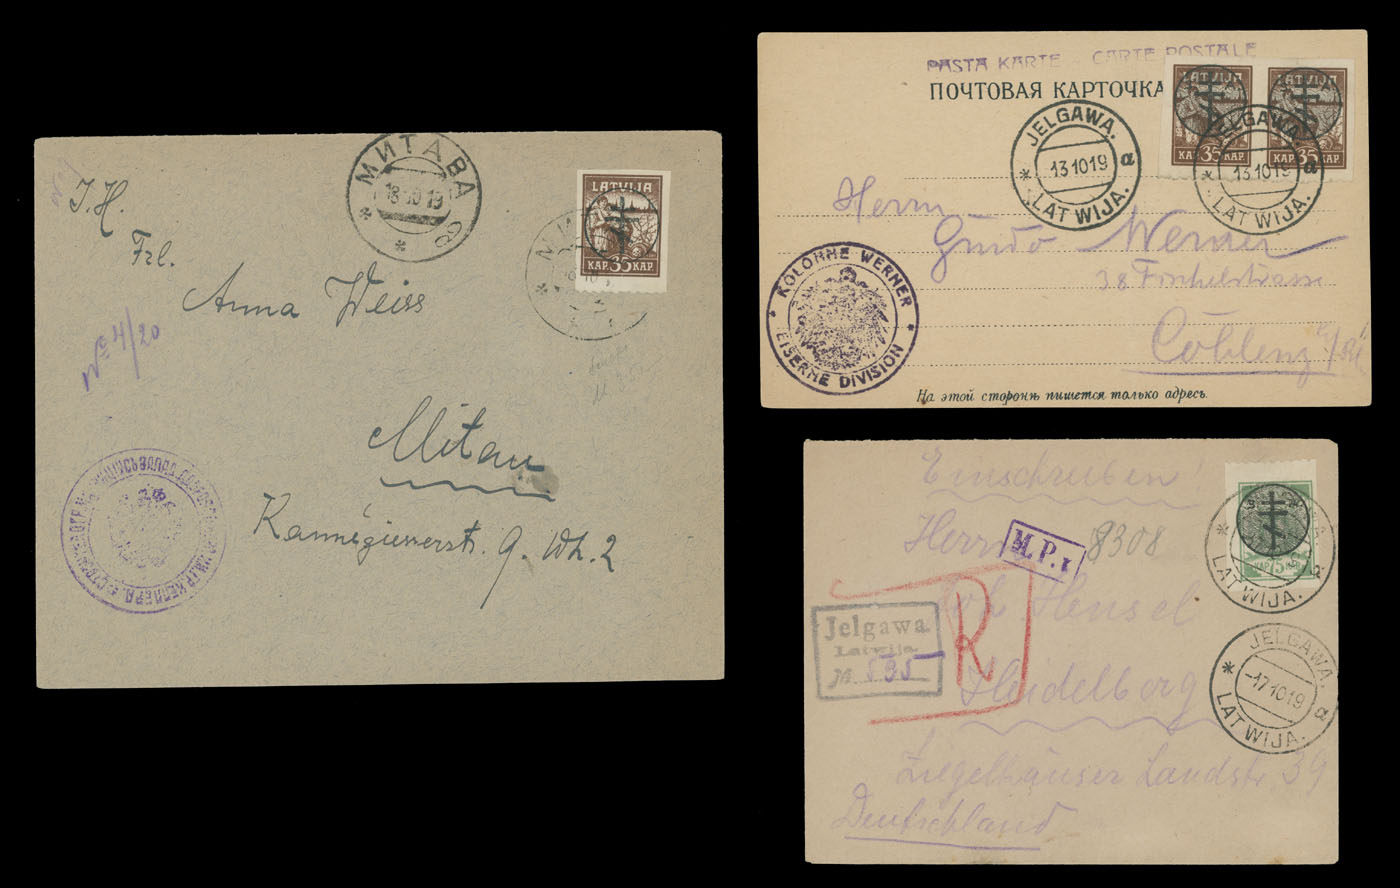 Lot 837 - Latvia - Russian Occupation Issues  -  Raritan Stamps Inc. Live Bidding Auction #81